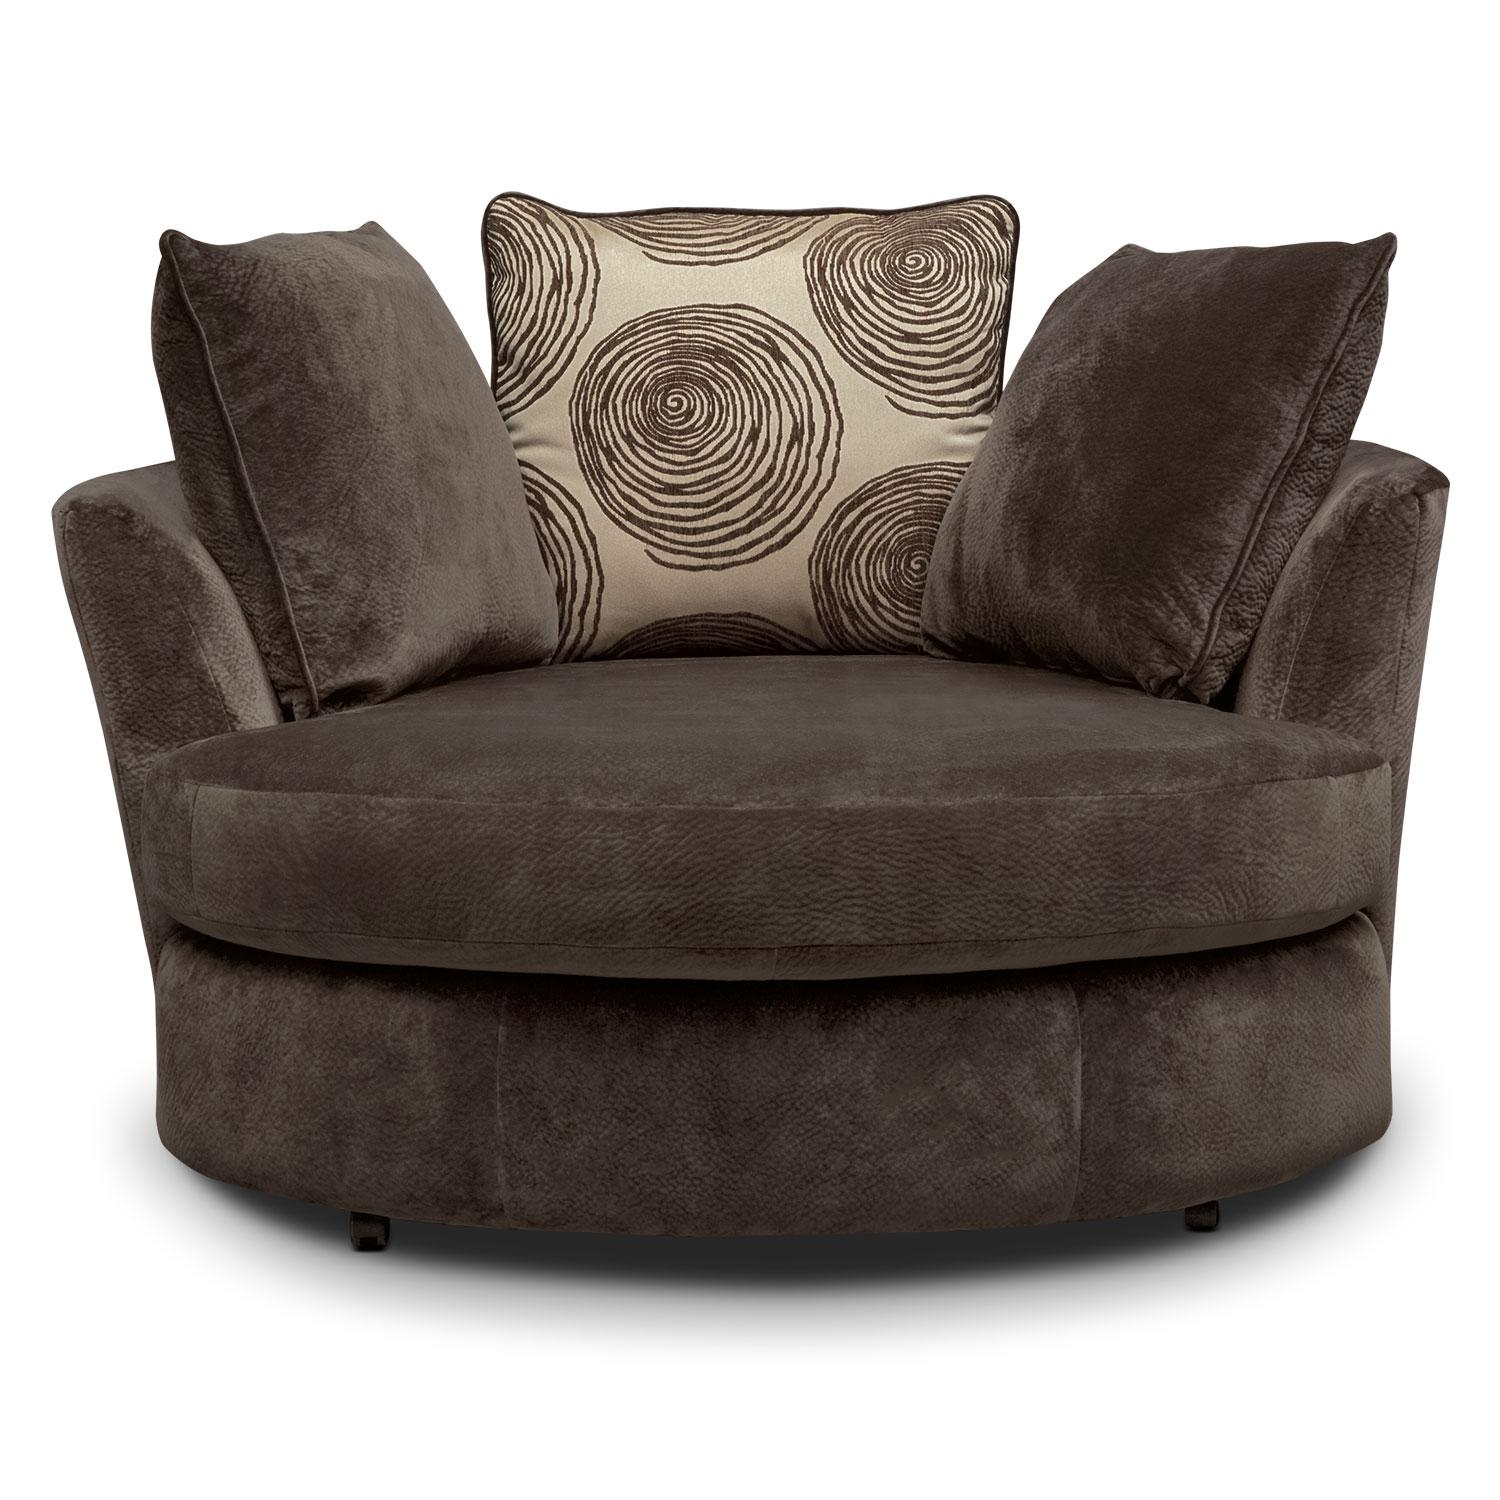 Cordelle Swivel Chair – Chocolate | Value City Furniture Intended For Swivel Sofa Chairs (View 2 of 20)